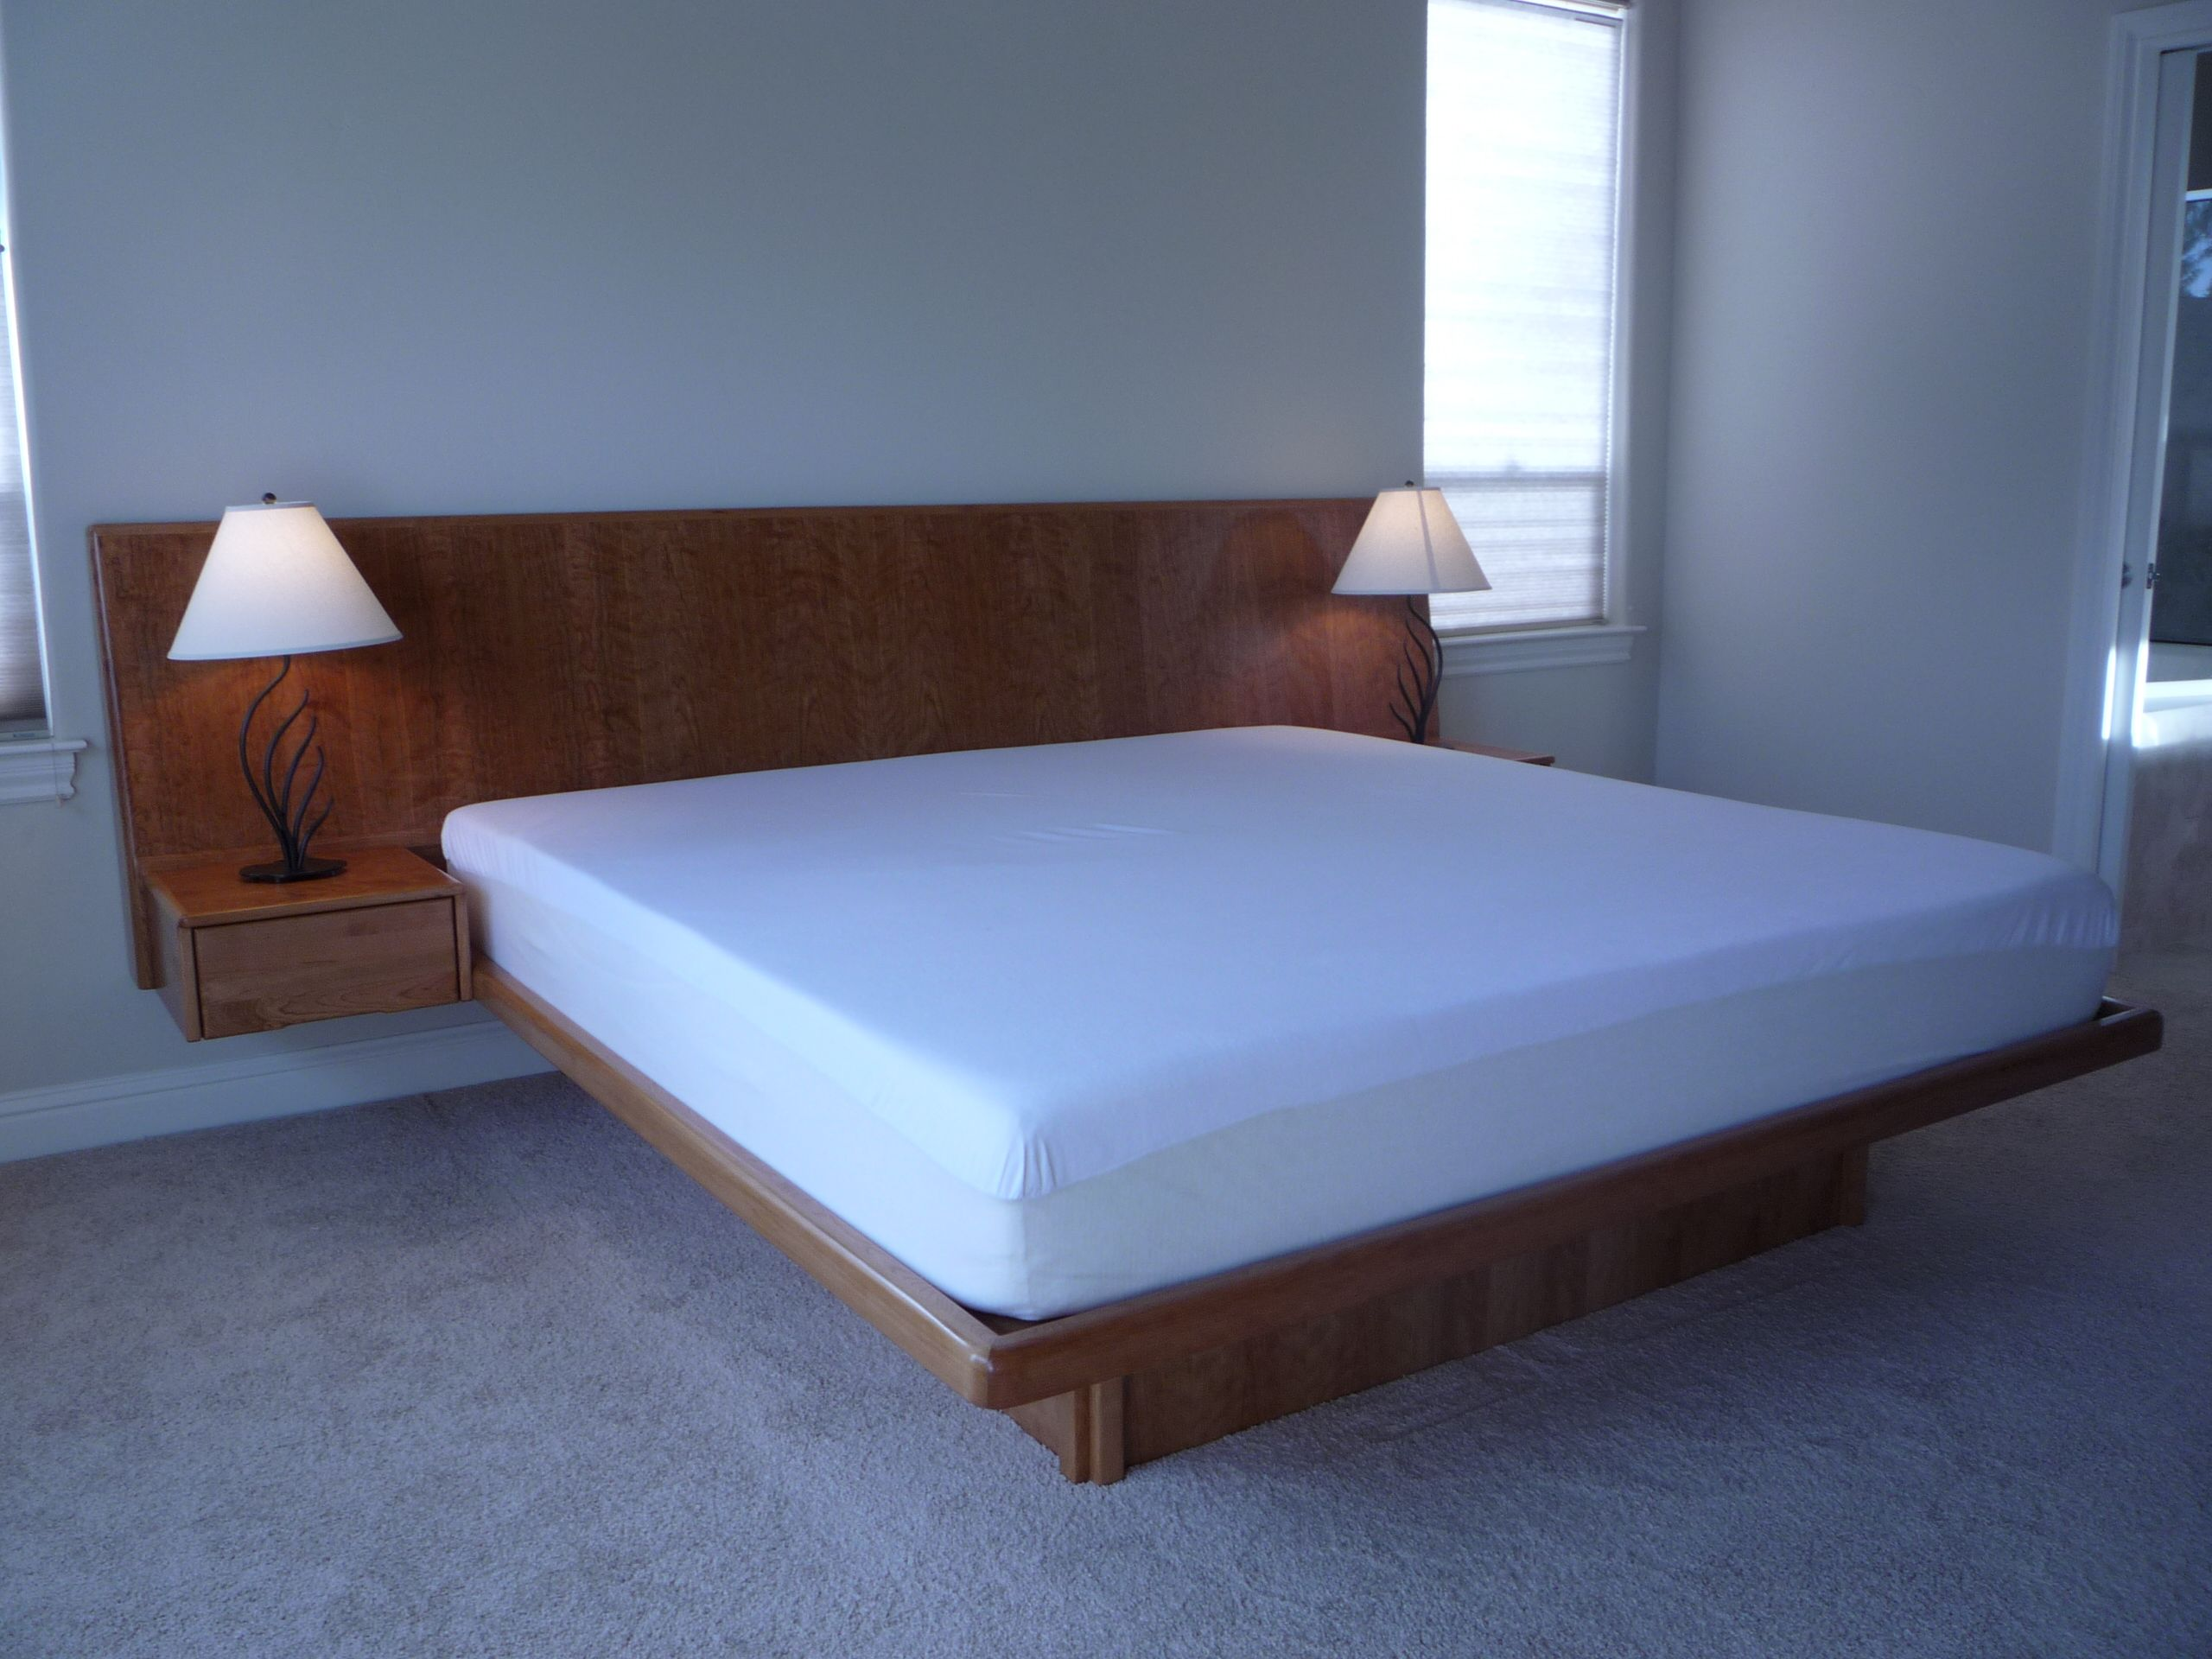 Cherry Floating Platform Bed With Slant Back Headboard